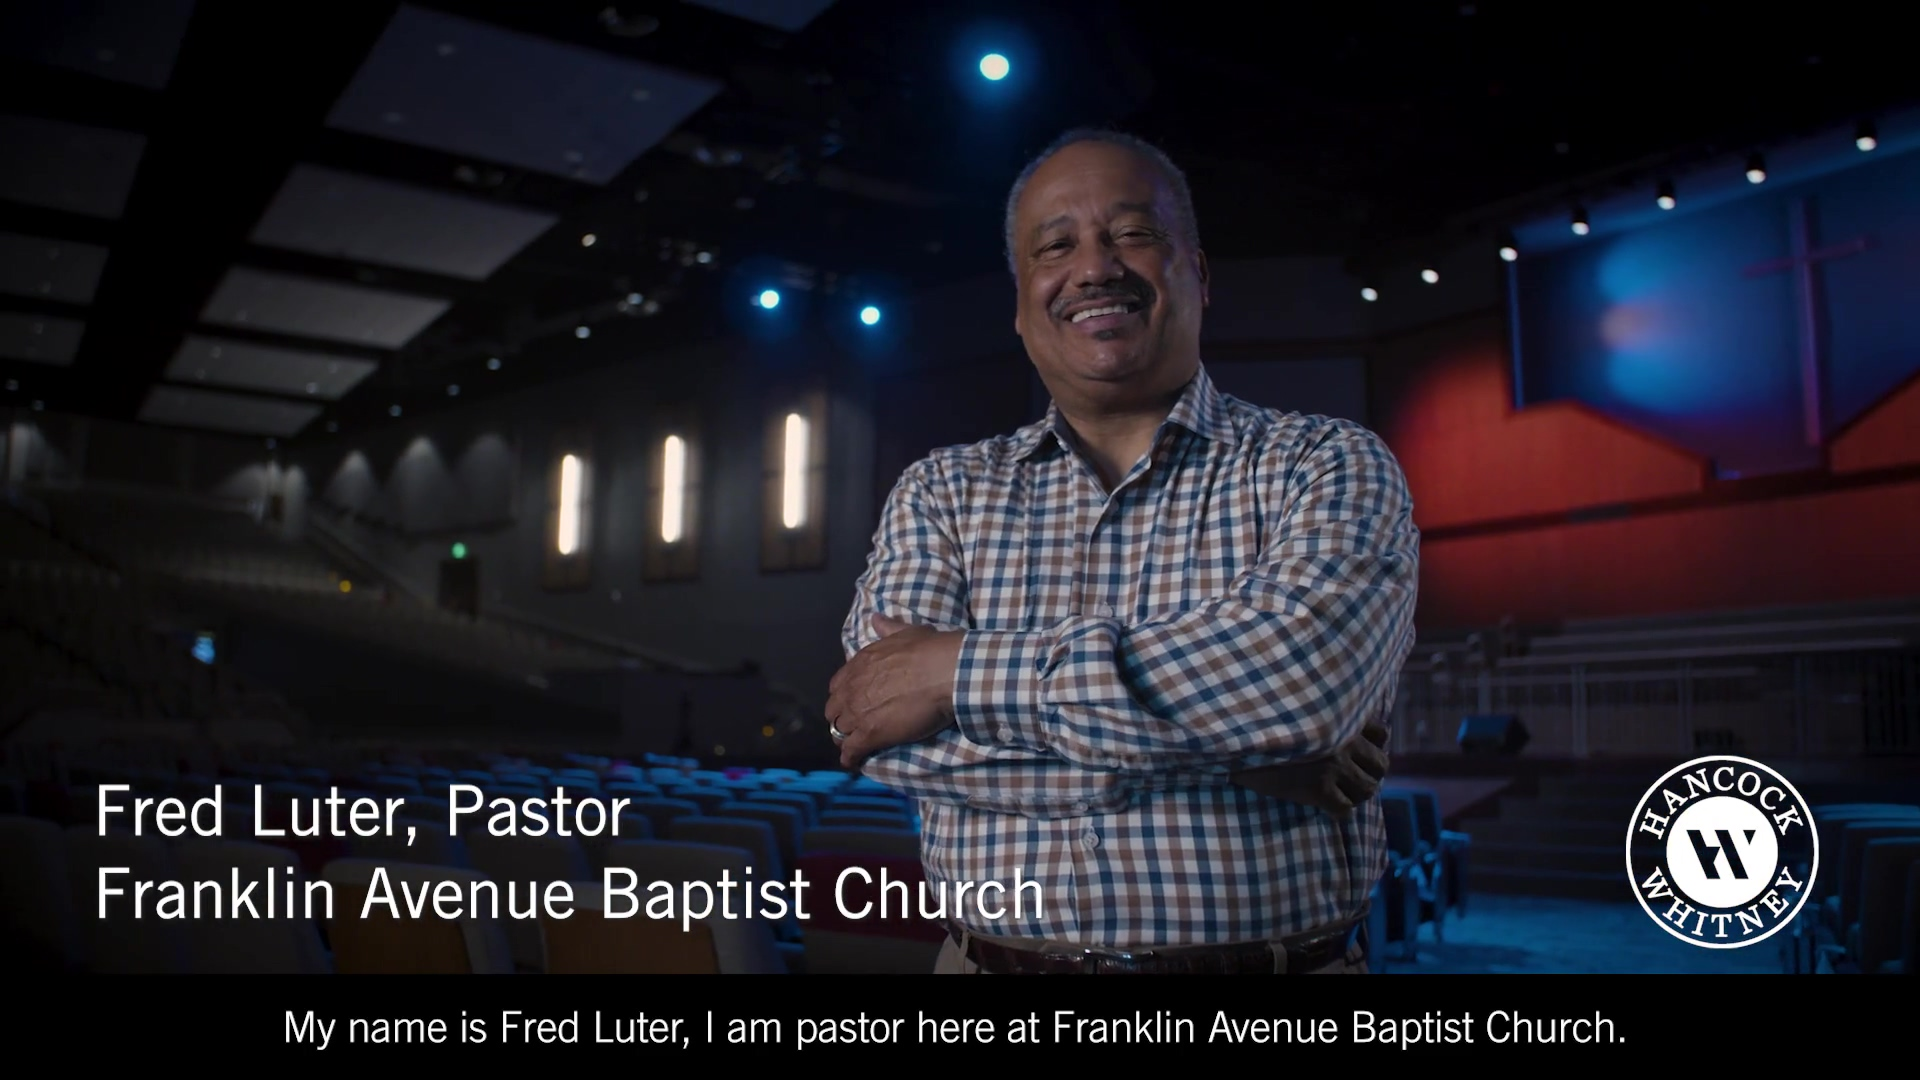 PPP-Franklin-Ave-Baptist-Church-Subtitles-MP4